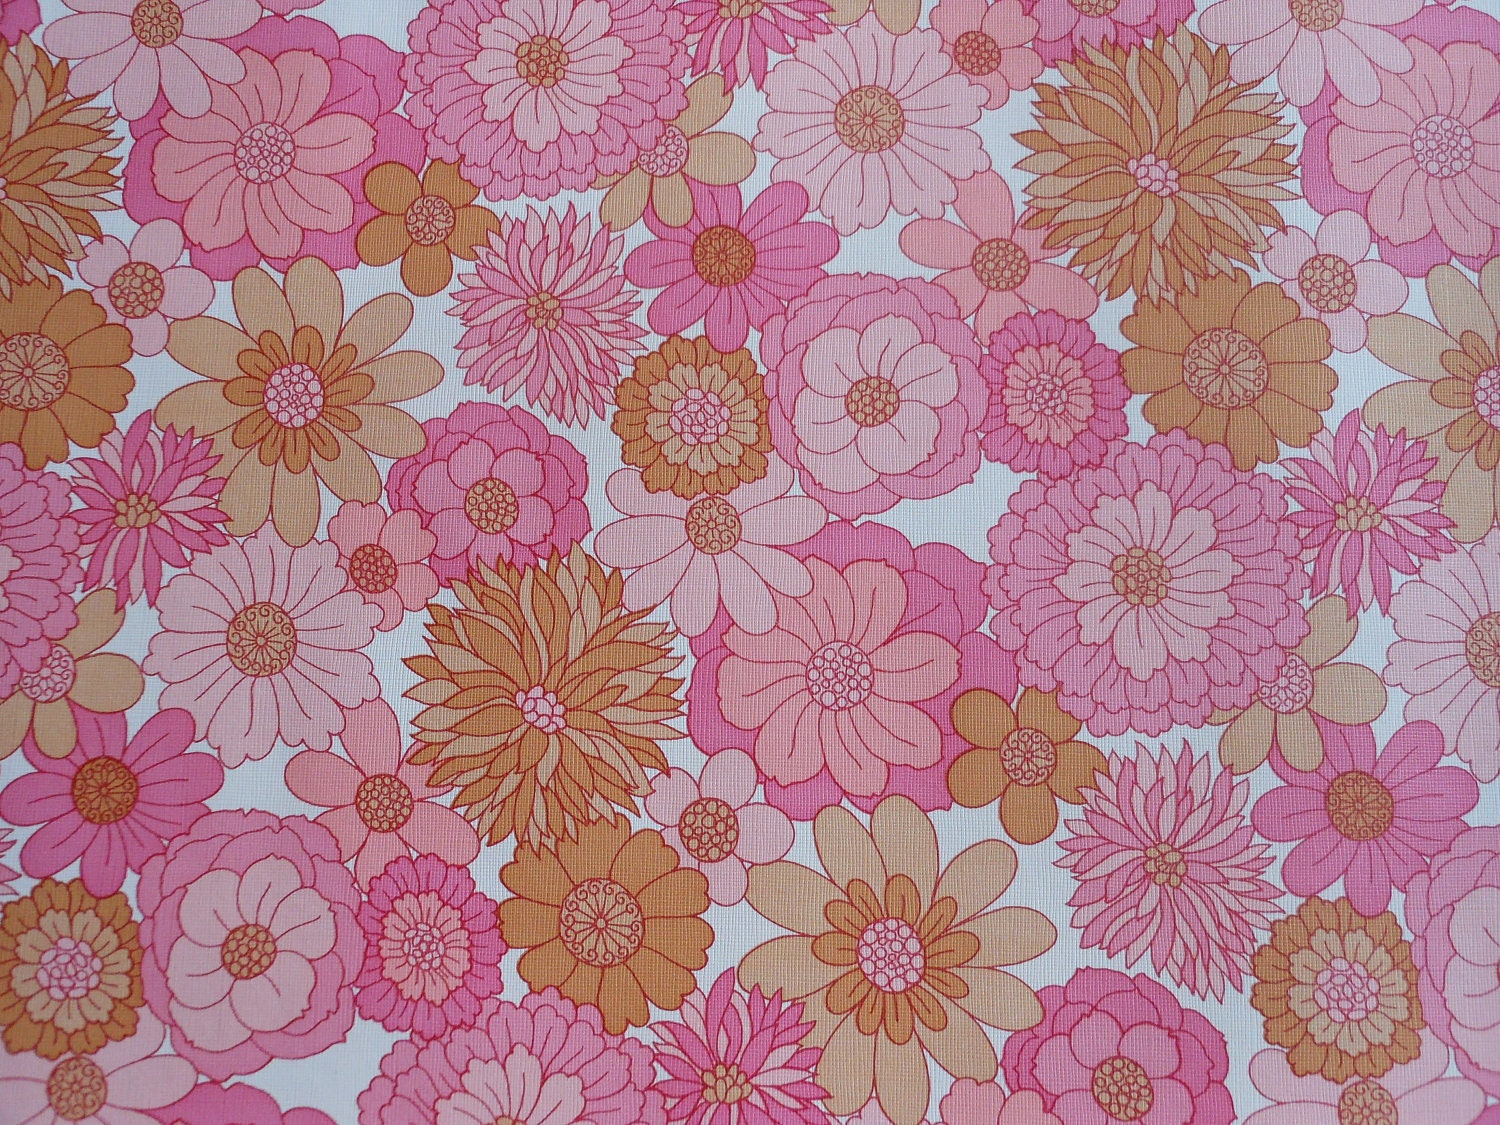 1970s vintage wallpaper retro - photo #43